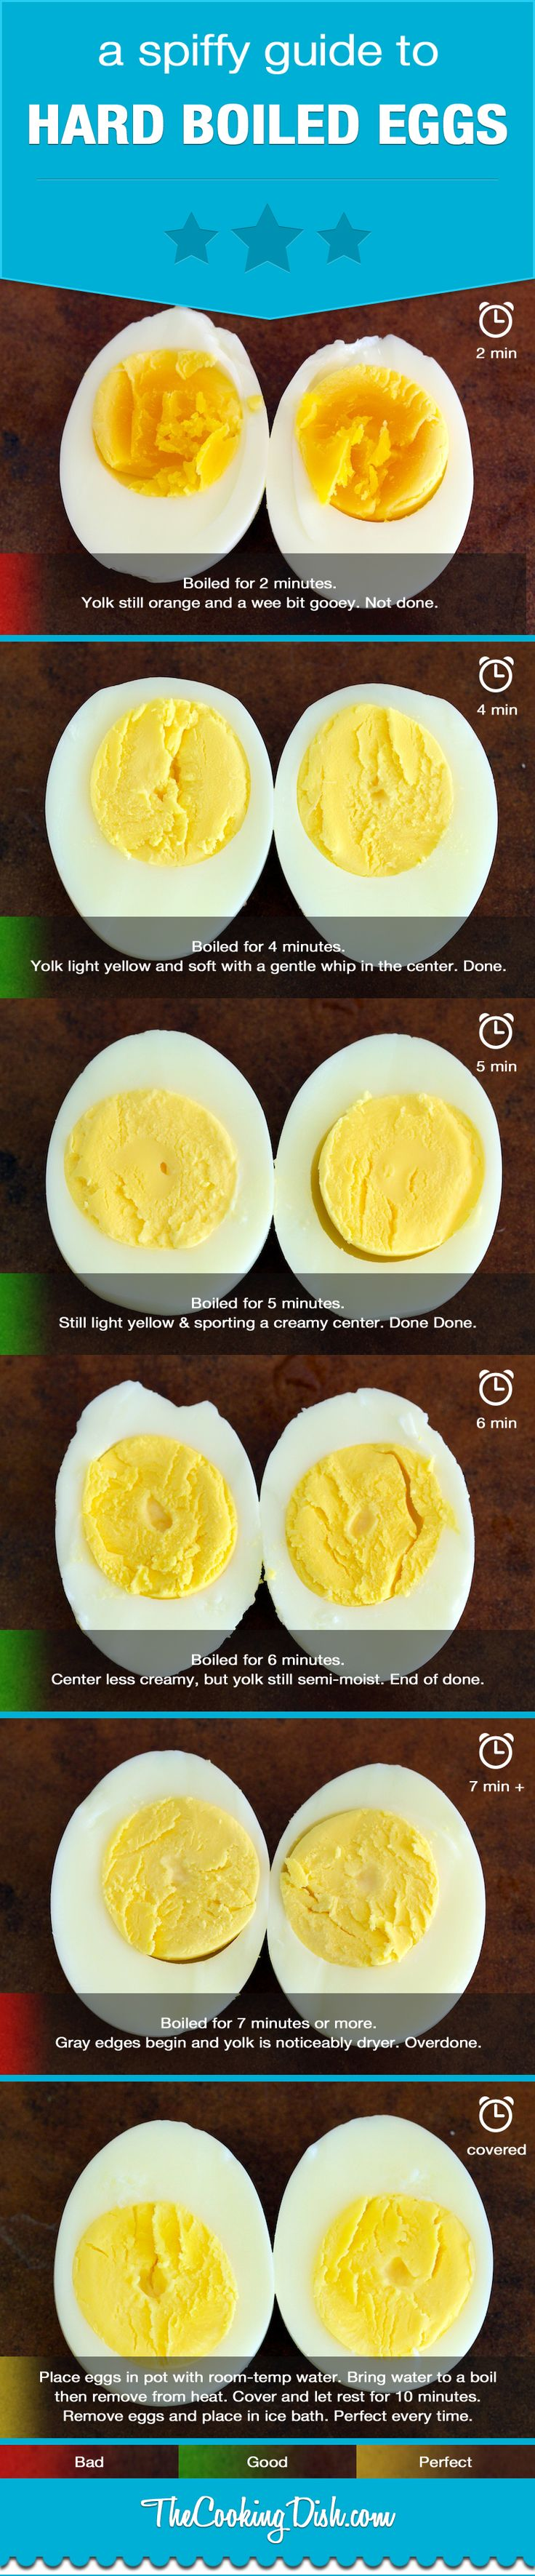 I never remember how to boil an egg, this will be nice to remember!